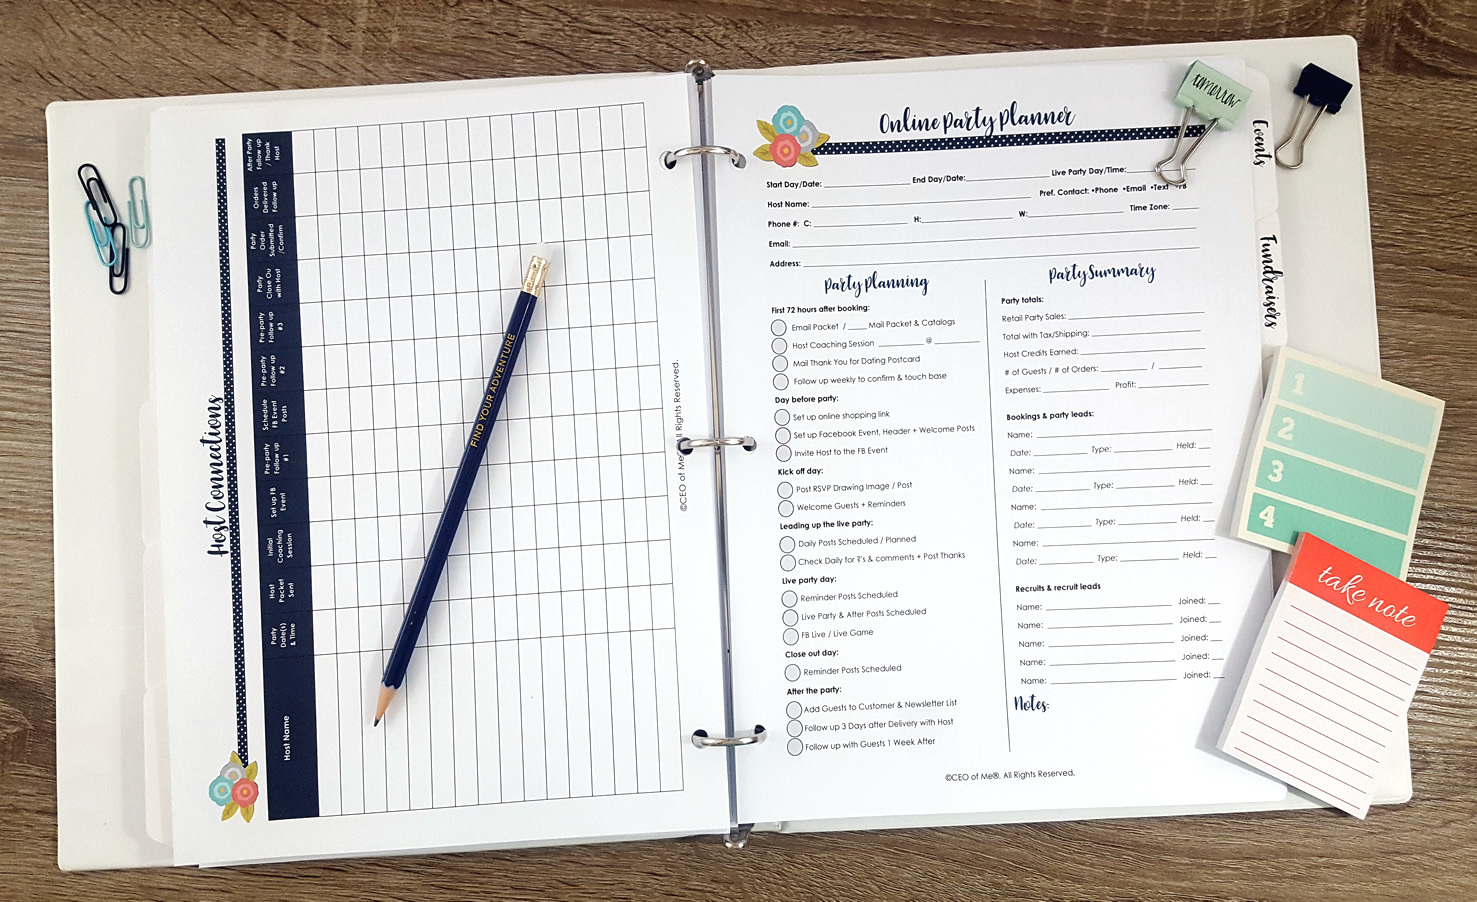 Direct Sales Printable Planner Toolkit